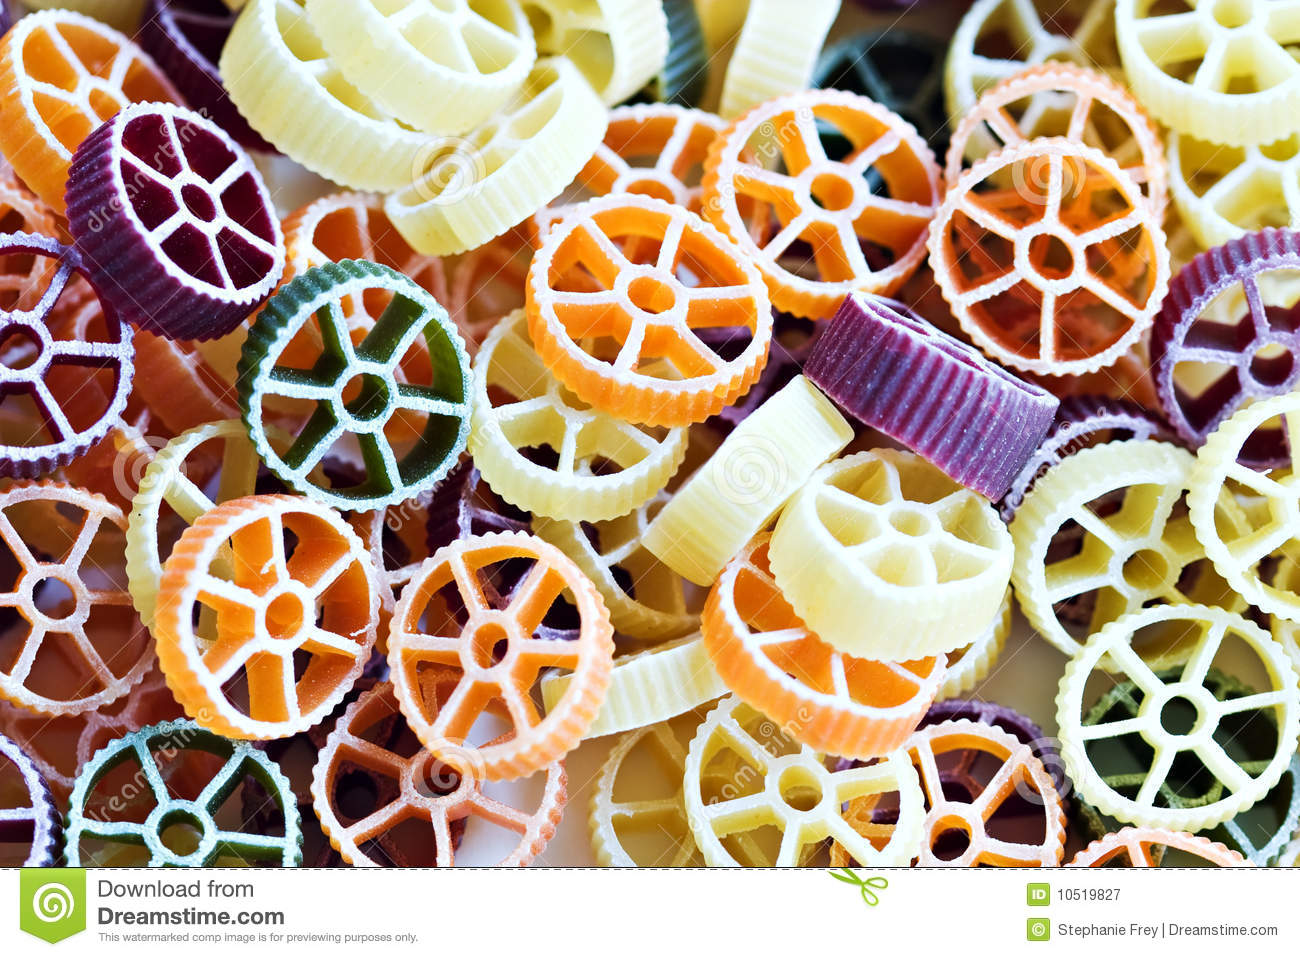 Rotelle Pasta http://www.dreamstime.com/royalty-free-stock-photography ...